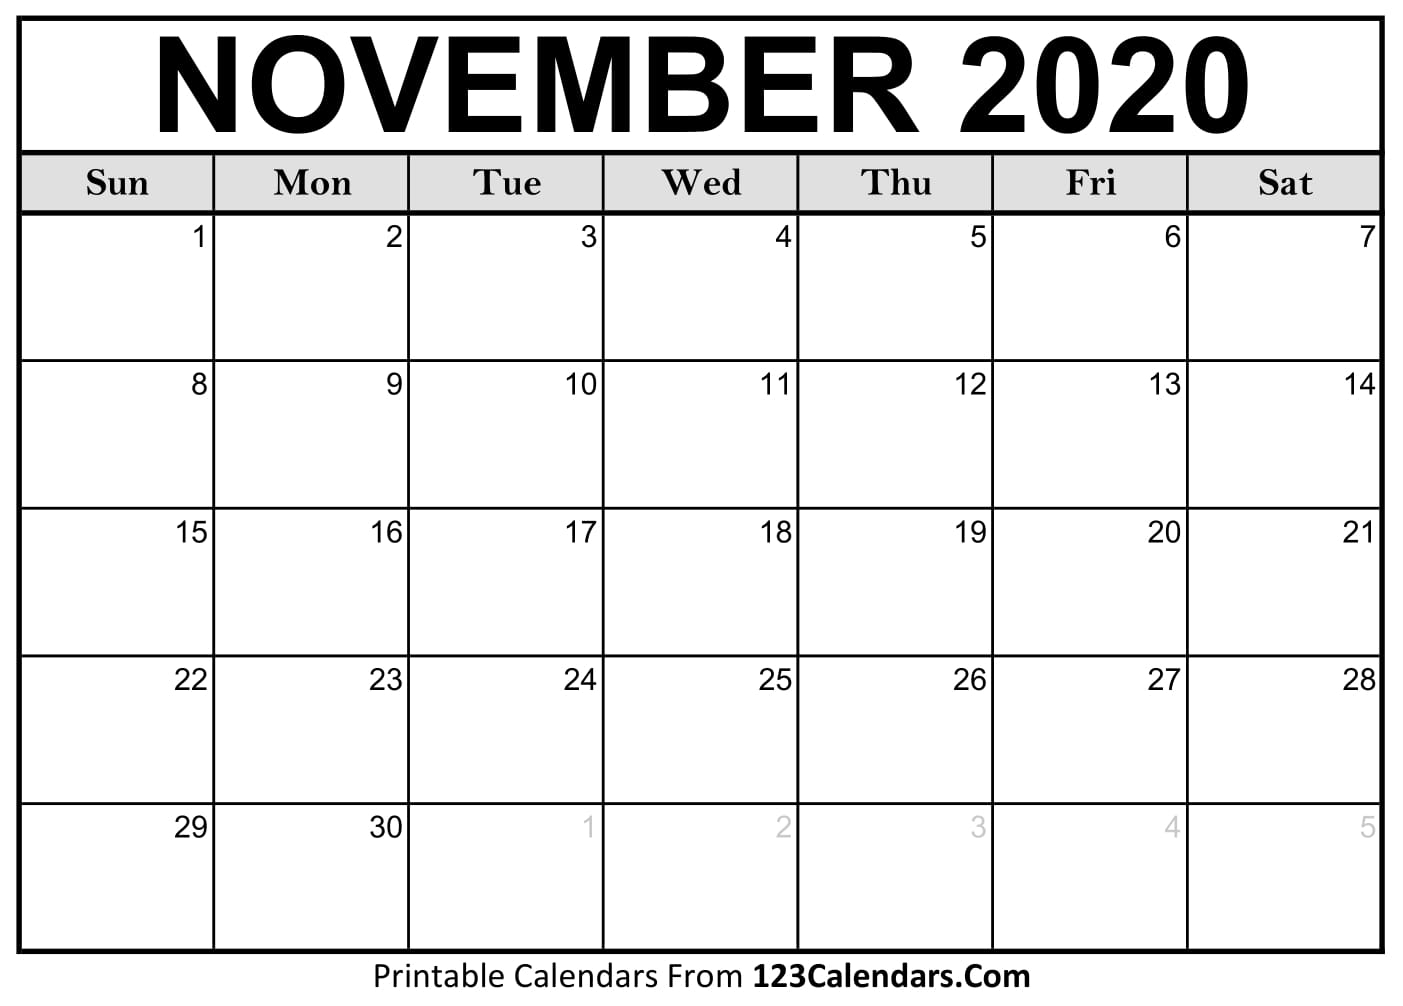 Free November 2020 Calendar | 123Calendars in Online Free Printable Calendar 2020